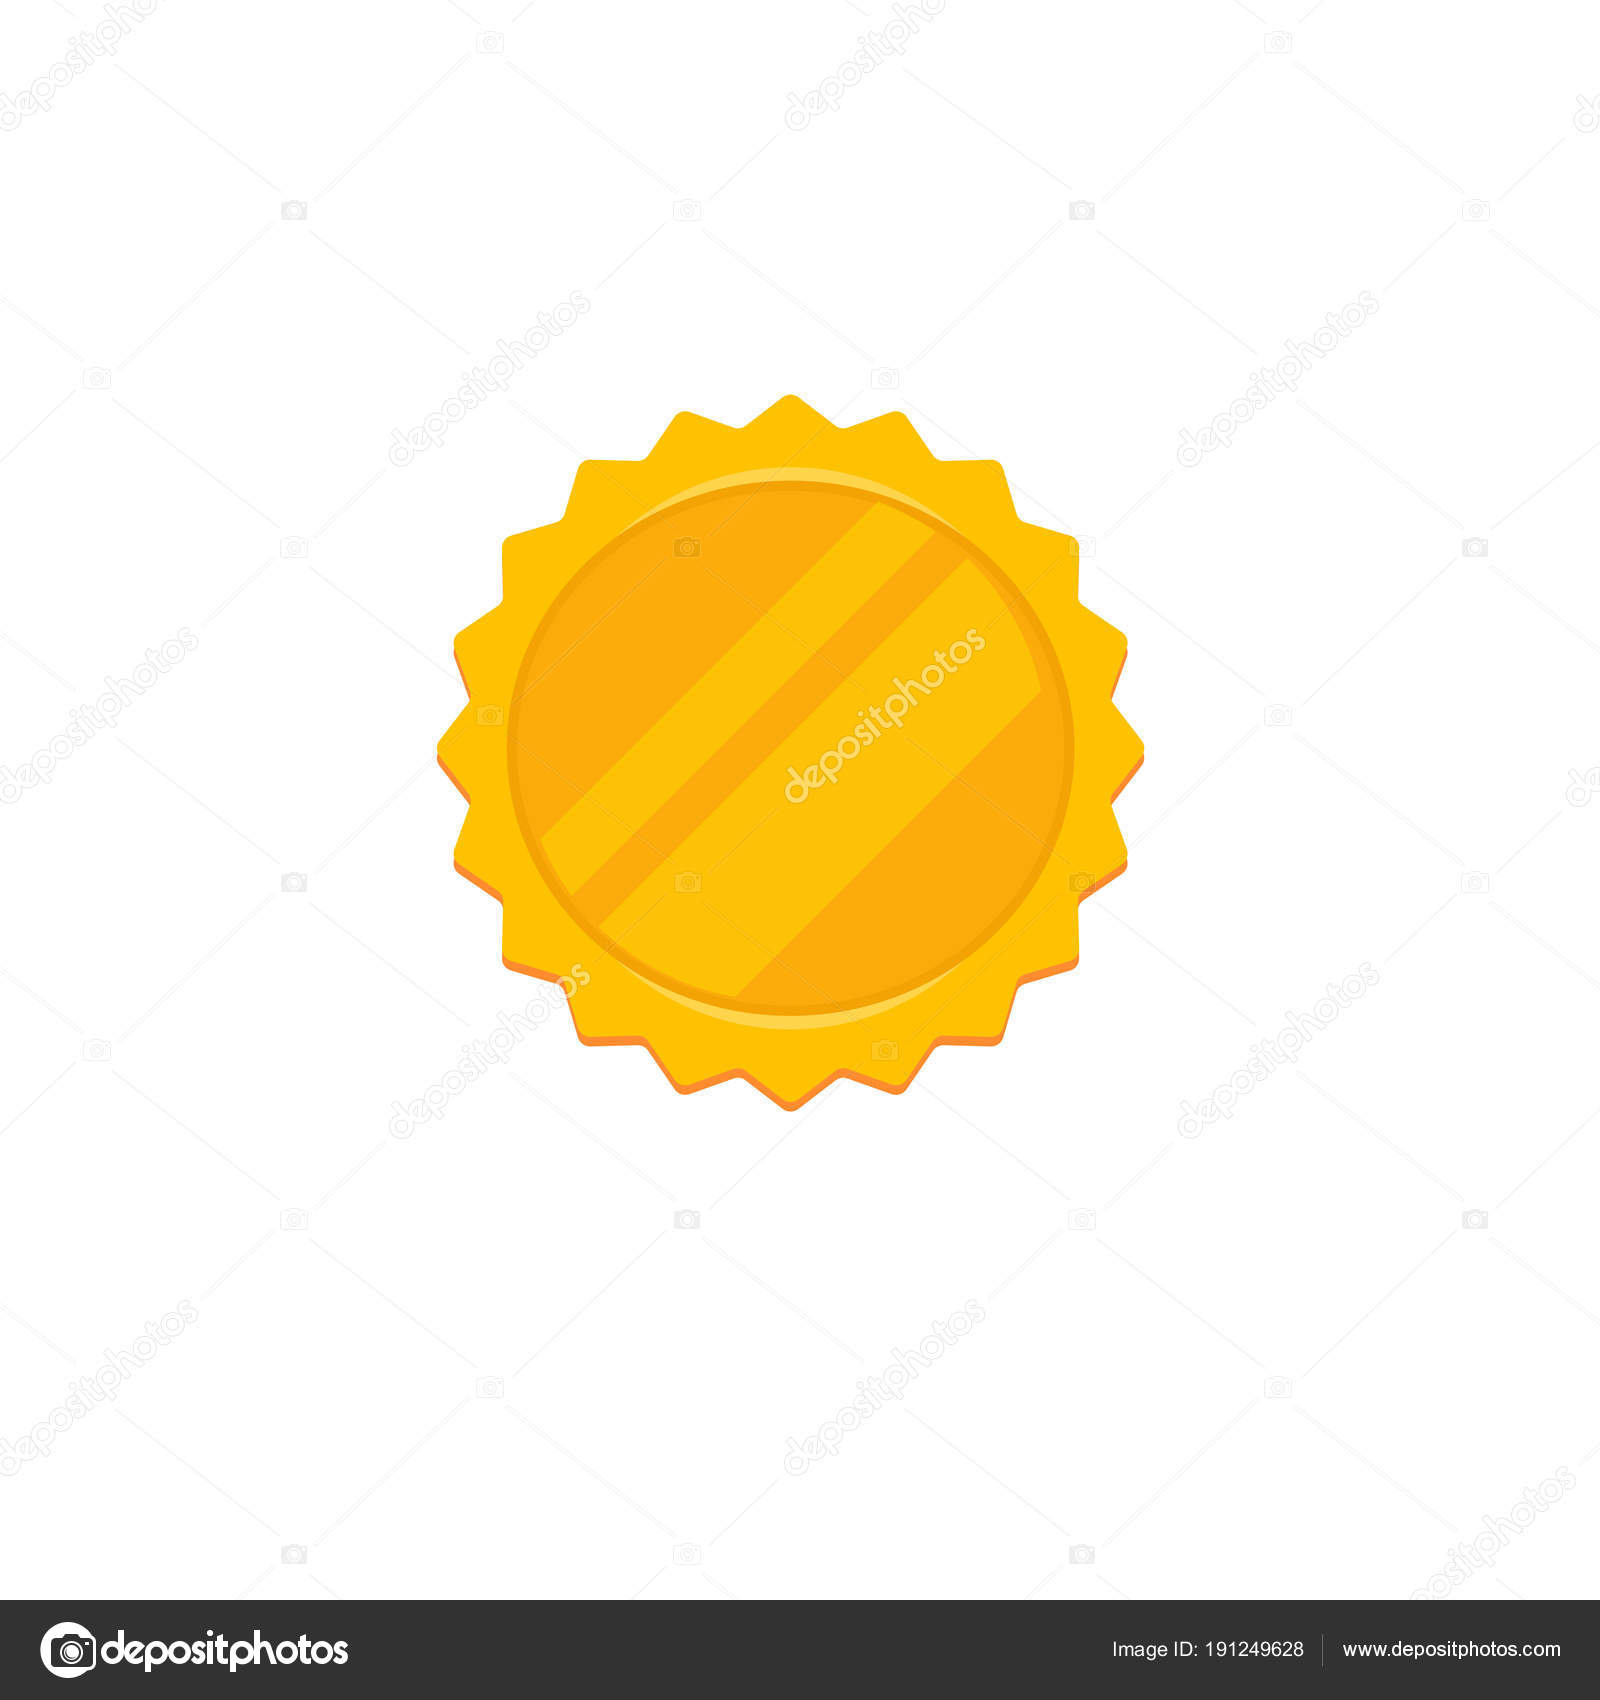 gold round quality best illustration sign vector stock label depositphotos